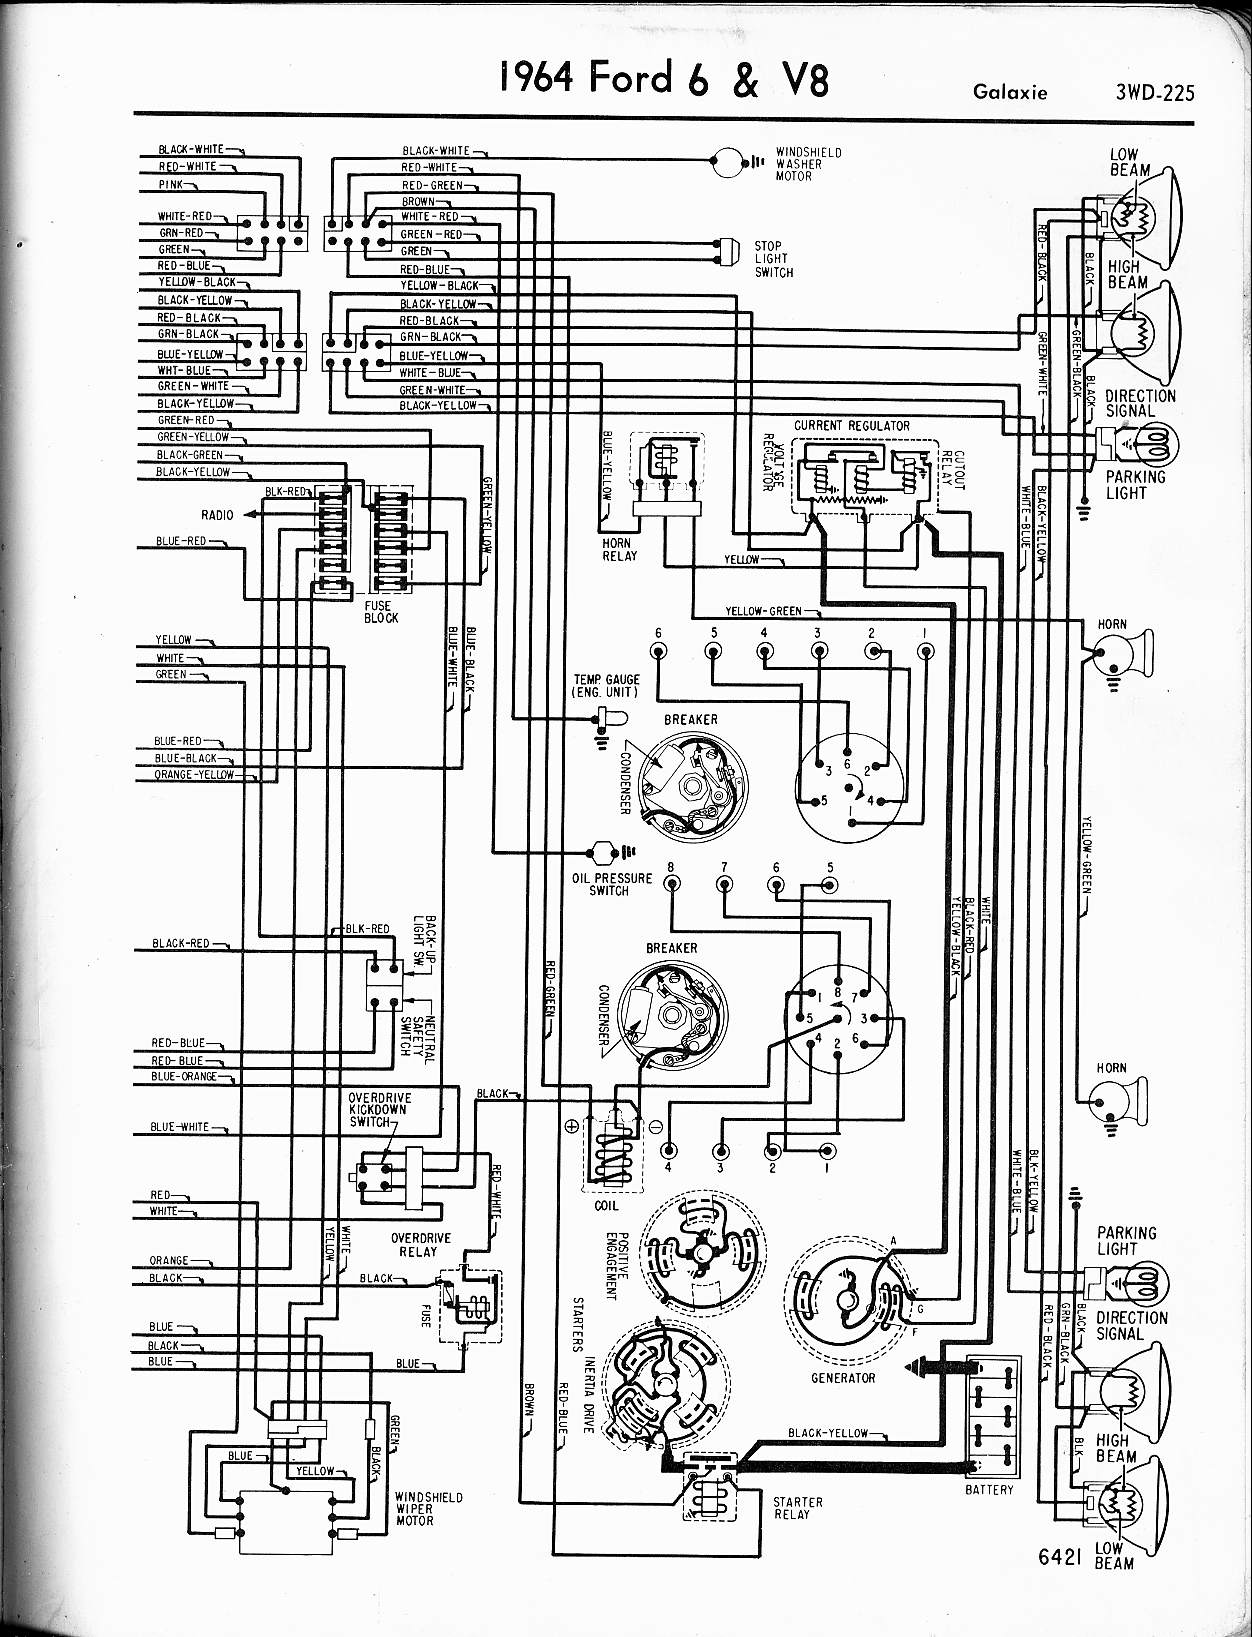 1964 ford ignition switch diagram 4 wire ultrasonic level transmitter 63 ranchero wiring and